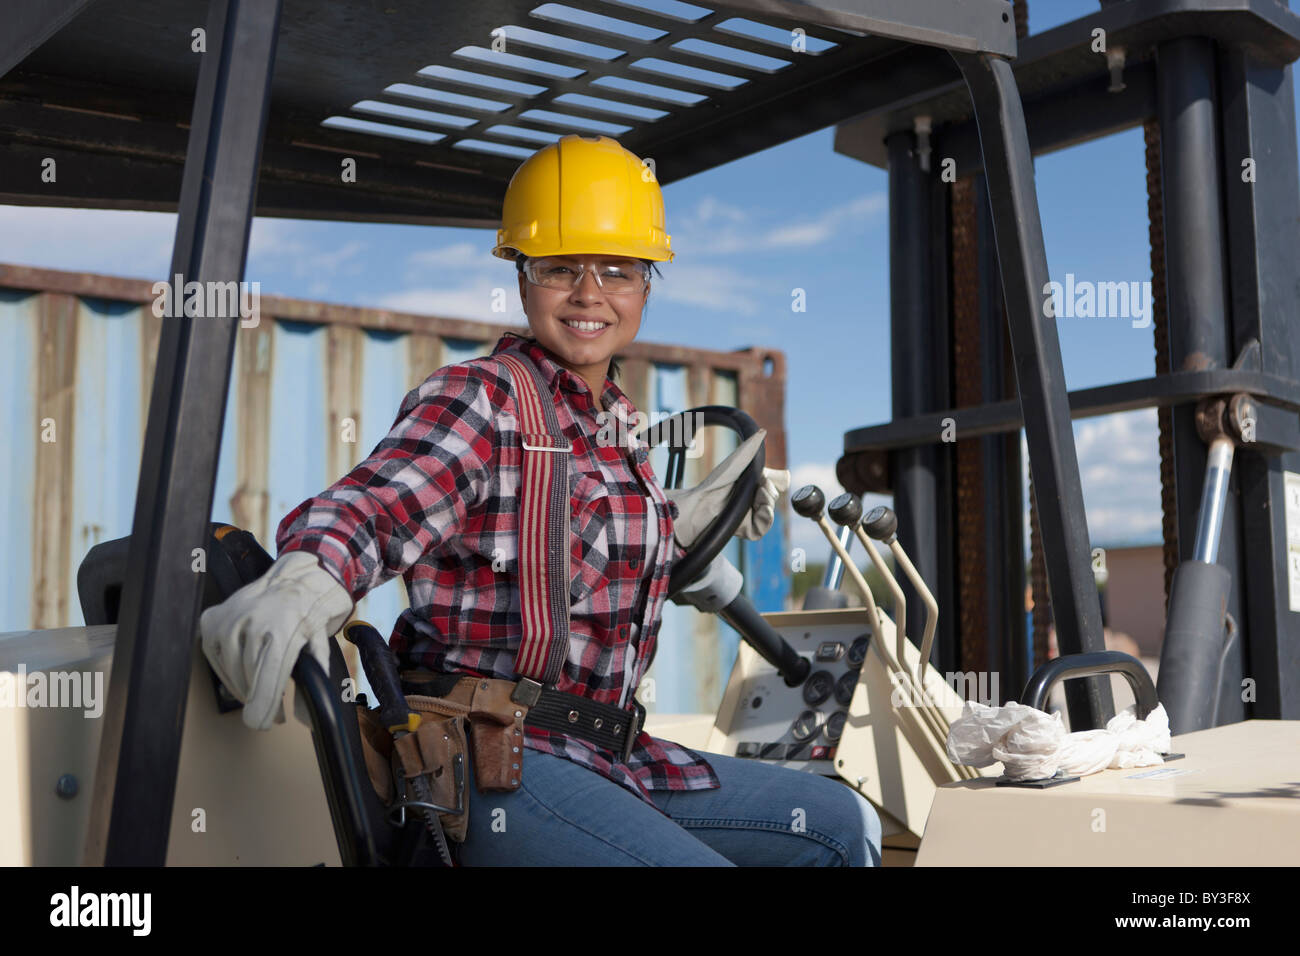 All female construction workers are lesbian 4